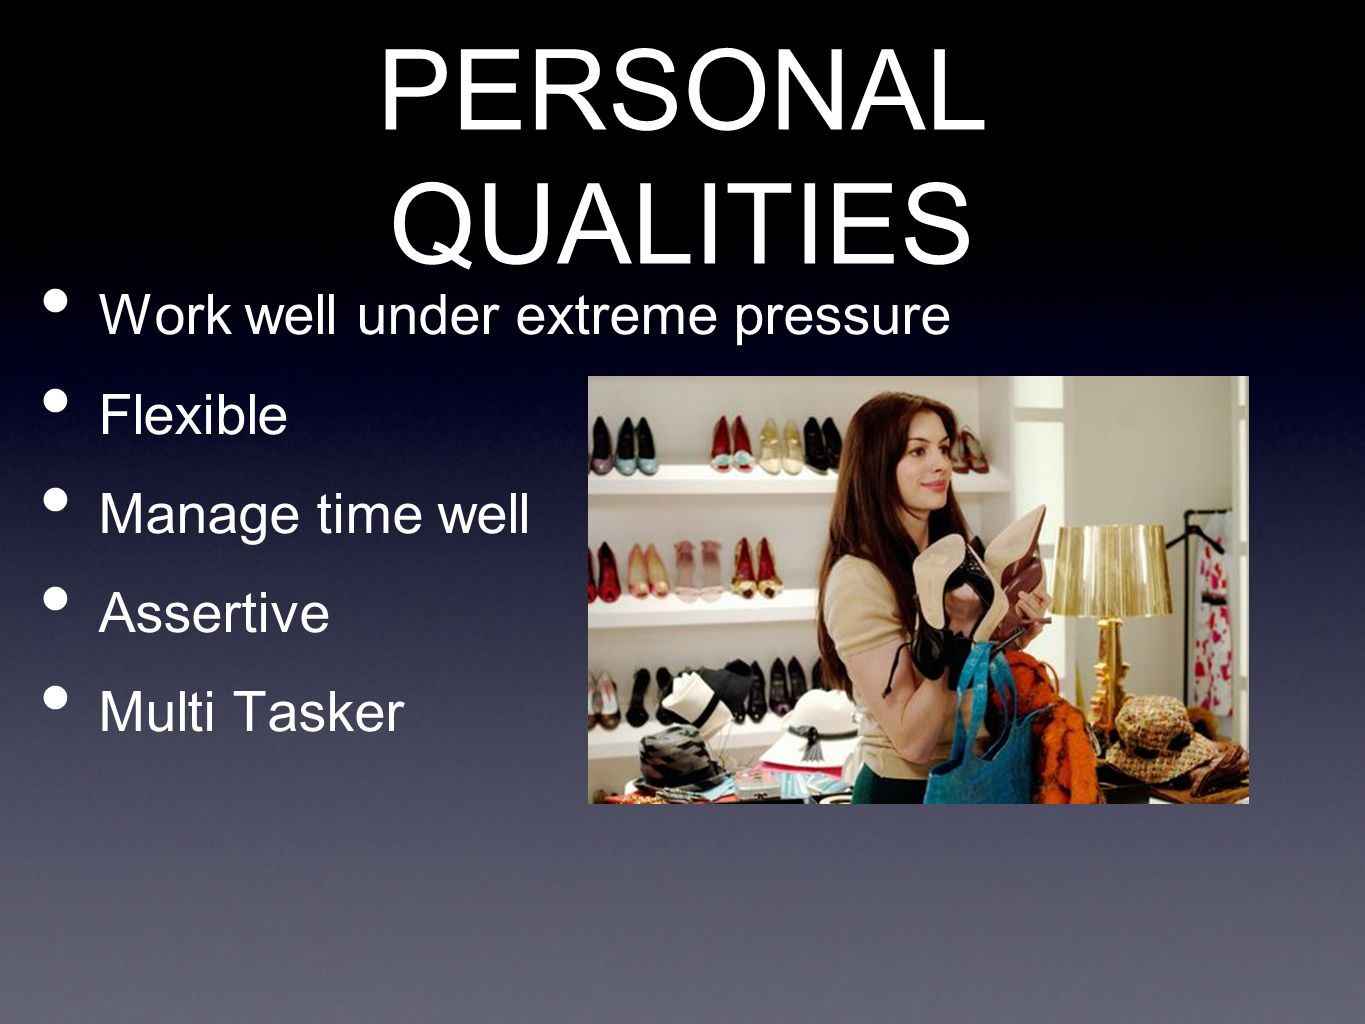 PERSONAL QUALITIES Work well under extreme pressure Flexible Manage time well Assertive Multi Tasker